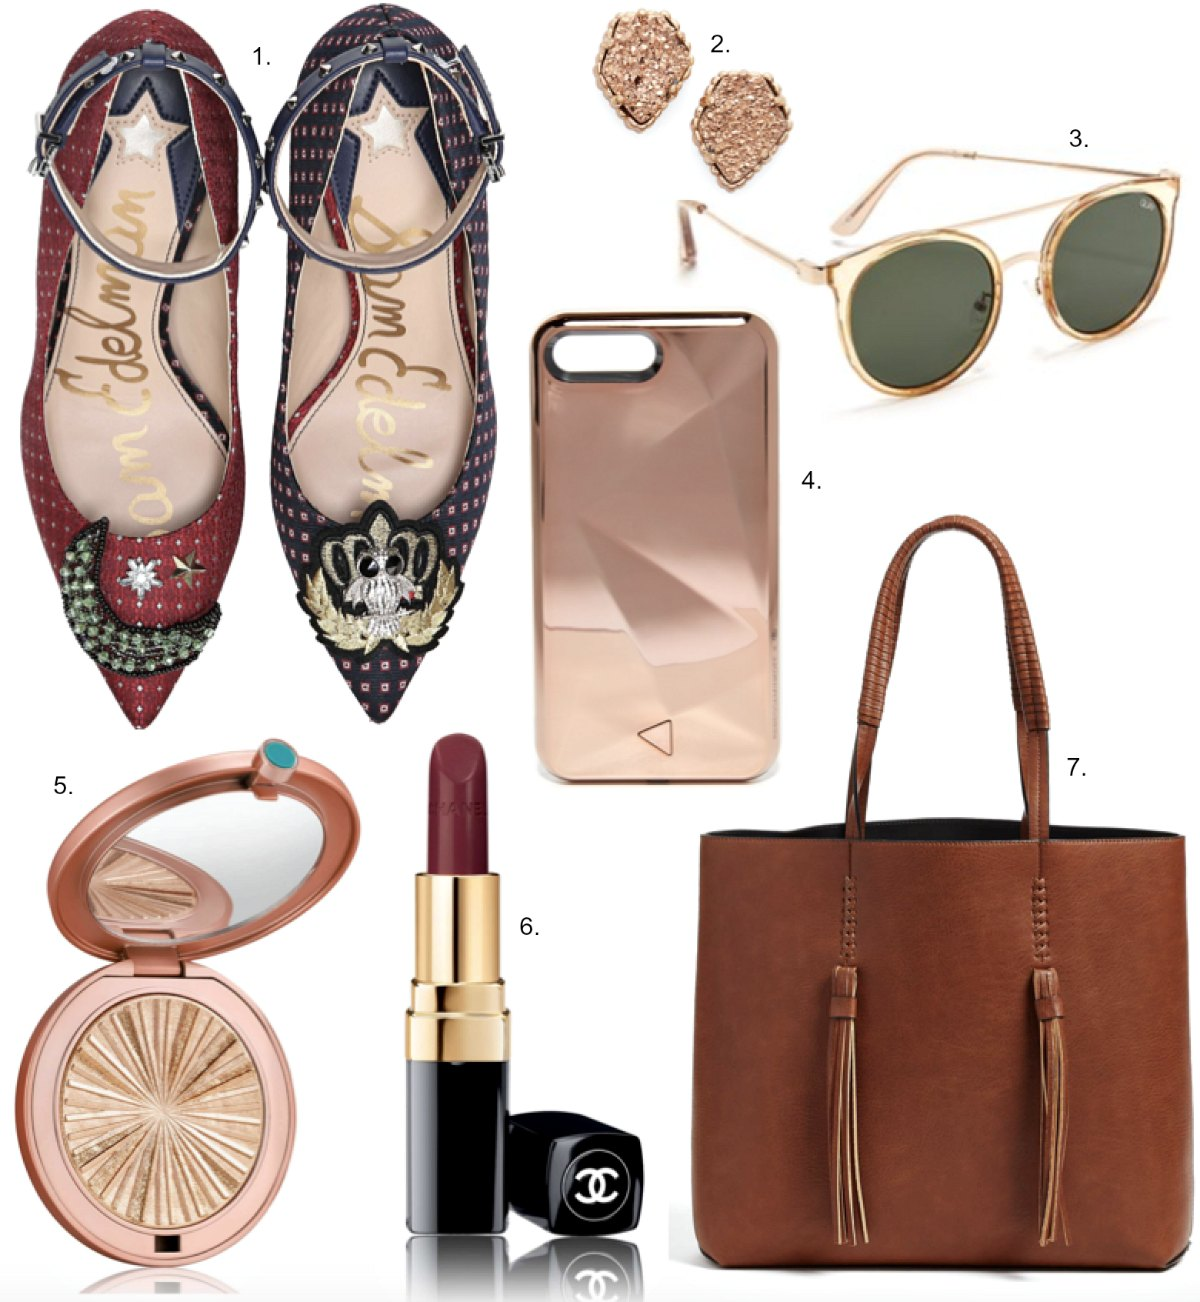 Sam Edelman Hermione Embellished Pumps estee lauderBronze Goddess Highlighter Compact rebeccca minkoff glow iphone light up selfie phone case